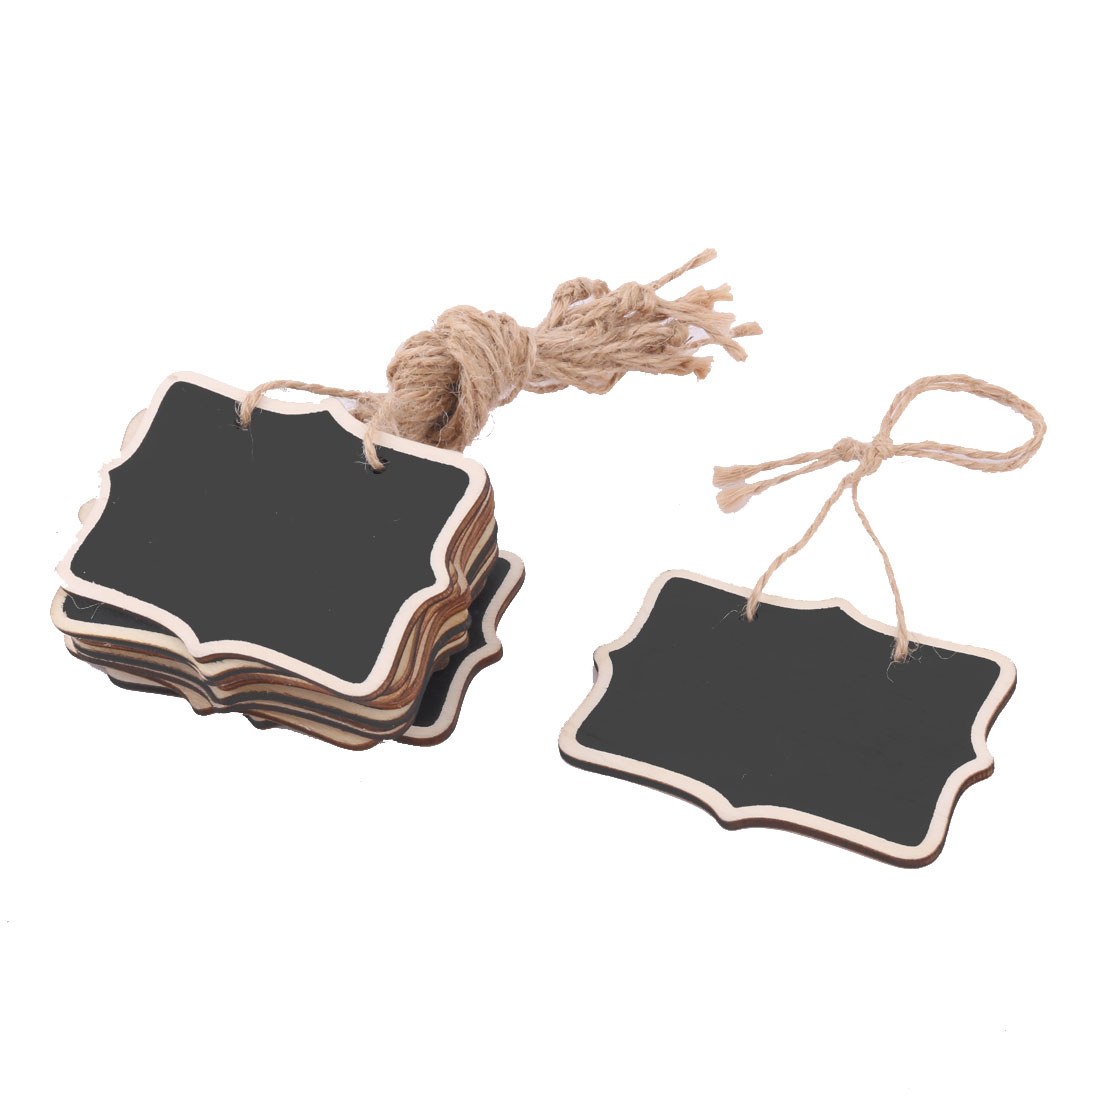 Kitchen Wooden Message Memo String Hanging Reusable Chalkboard Blackboard 12pcs